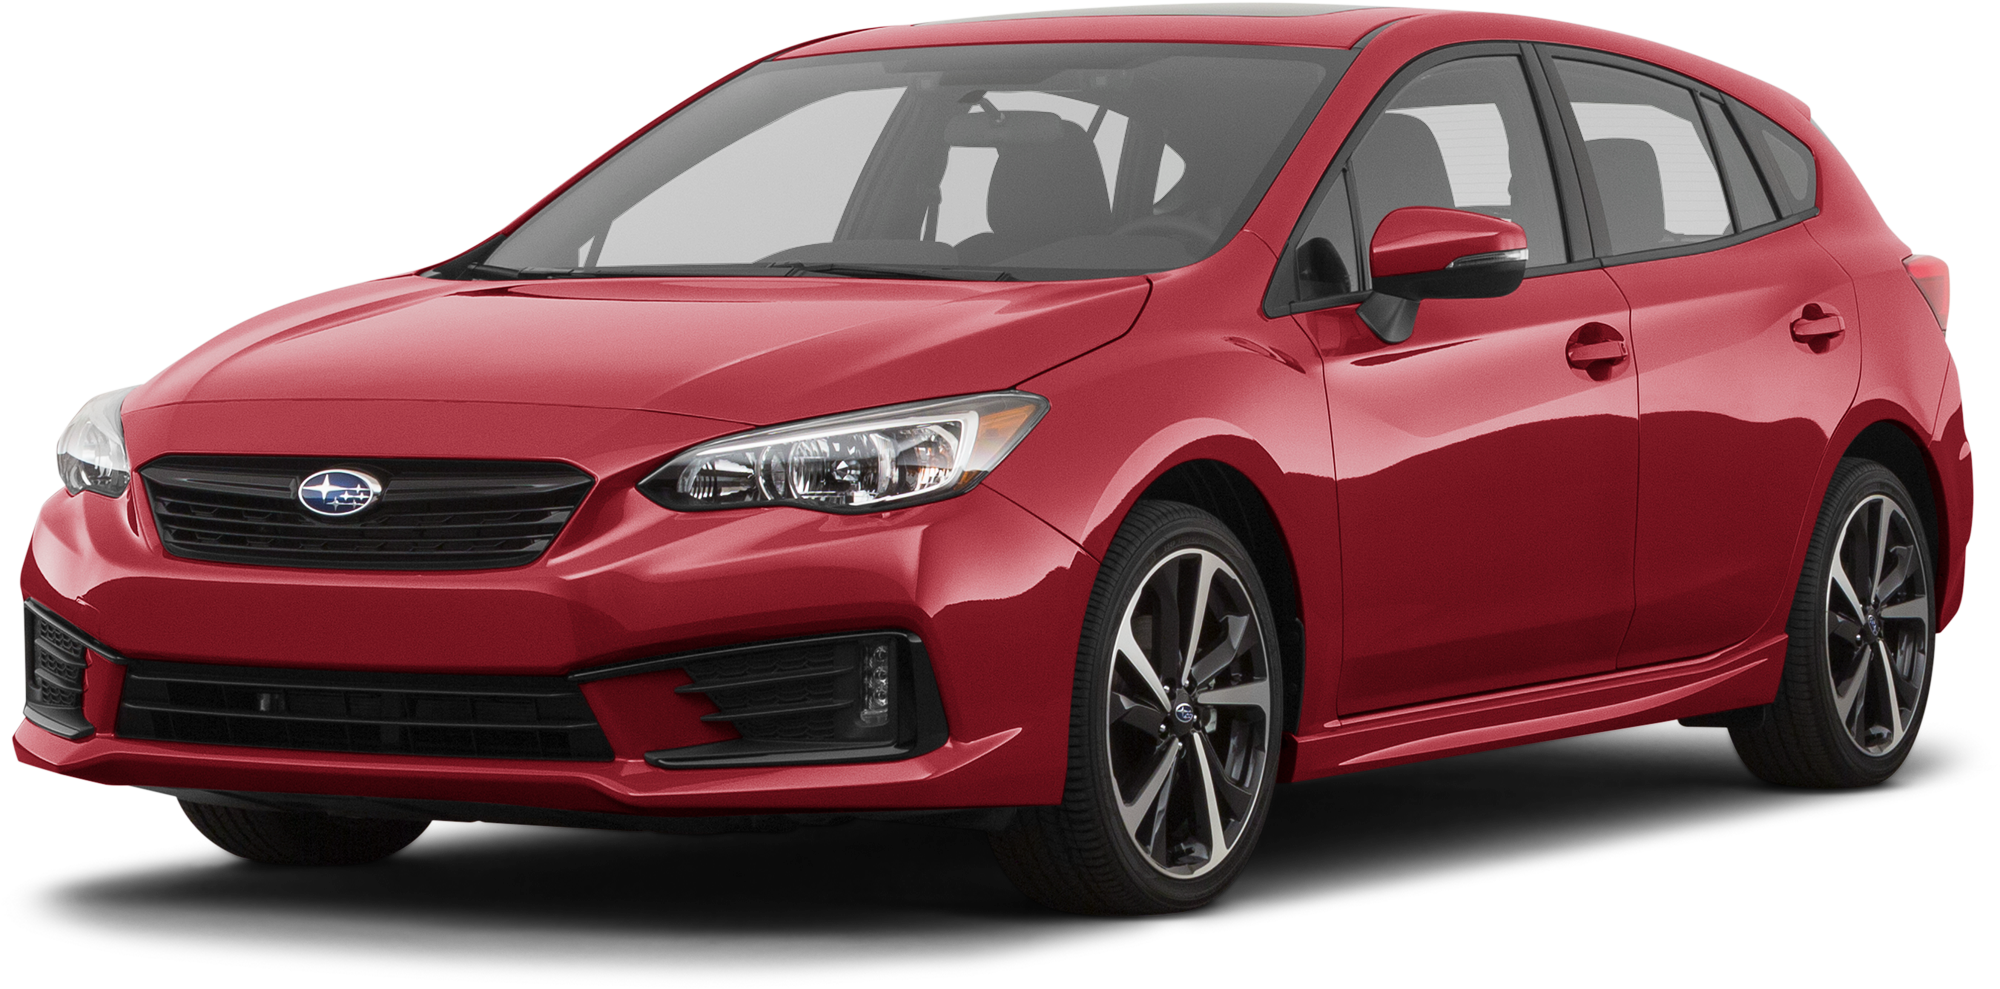 http://images.dealer.com/ddc/vehicles/2021/Subaru/Impreza/Hatchback/trim_Sport_76ce4a/perspective/front-left/2021_24.png